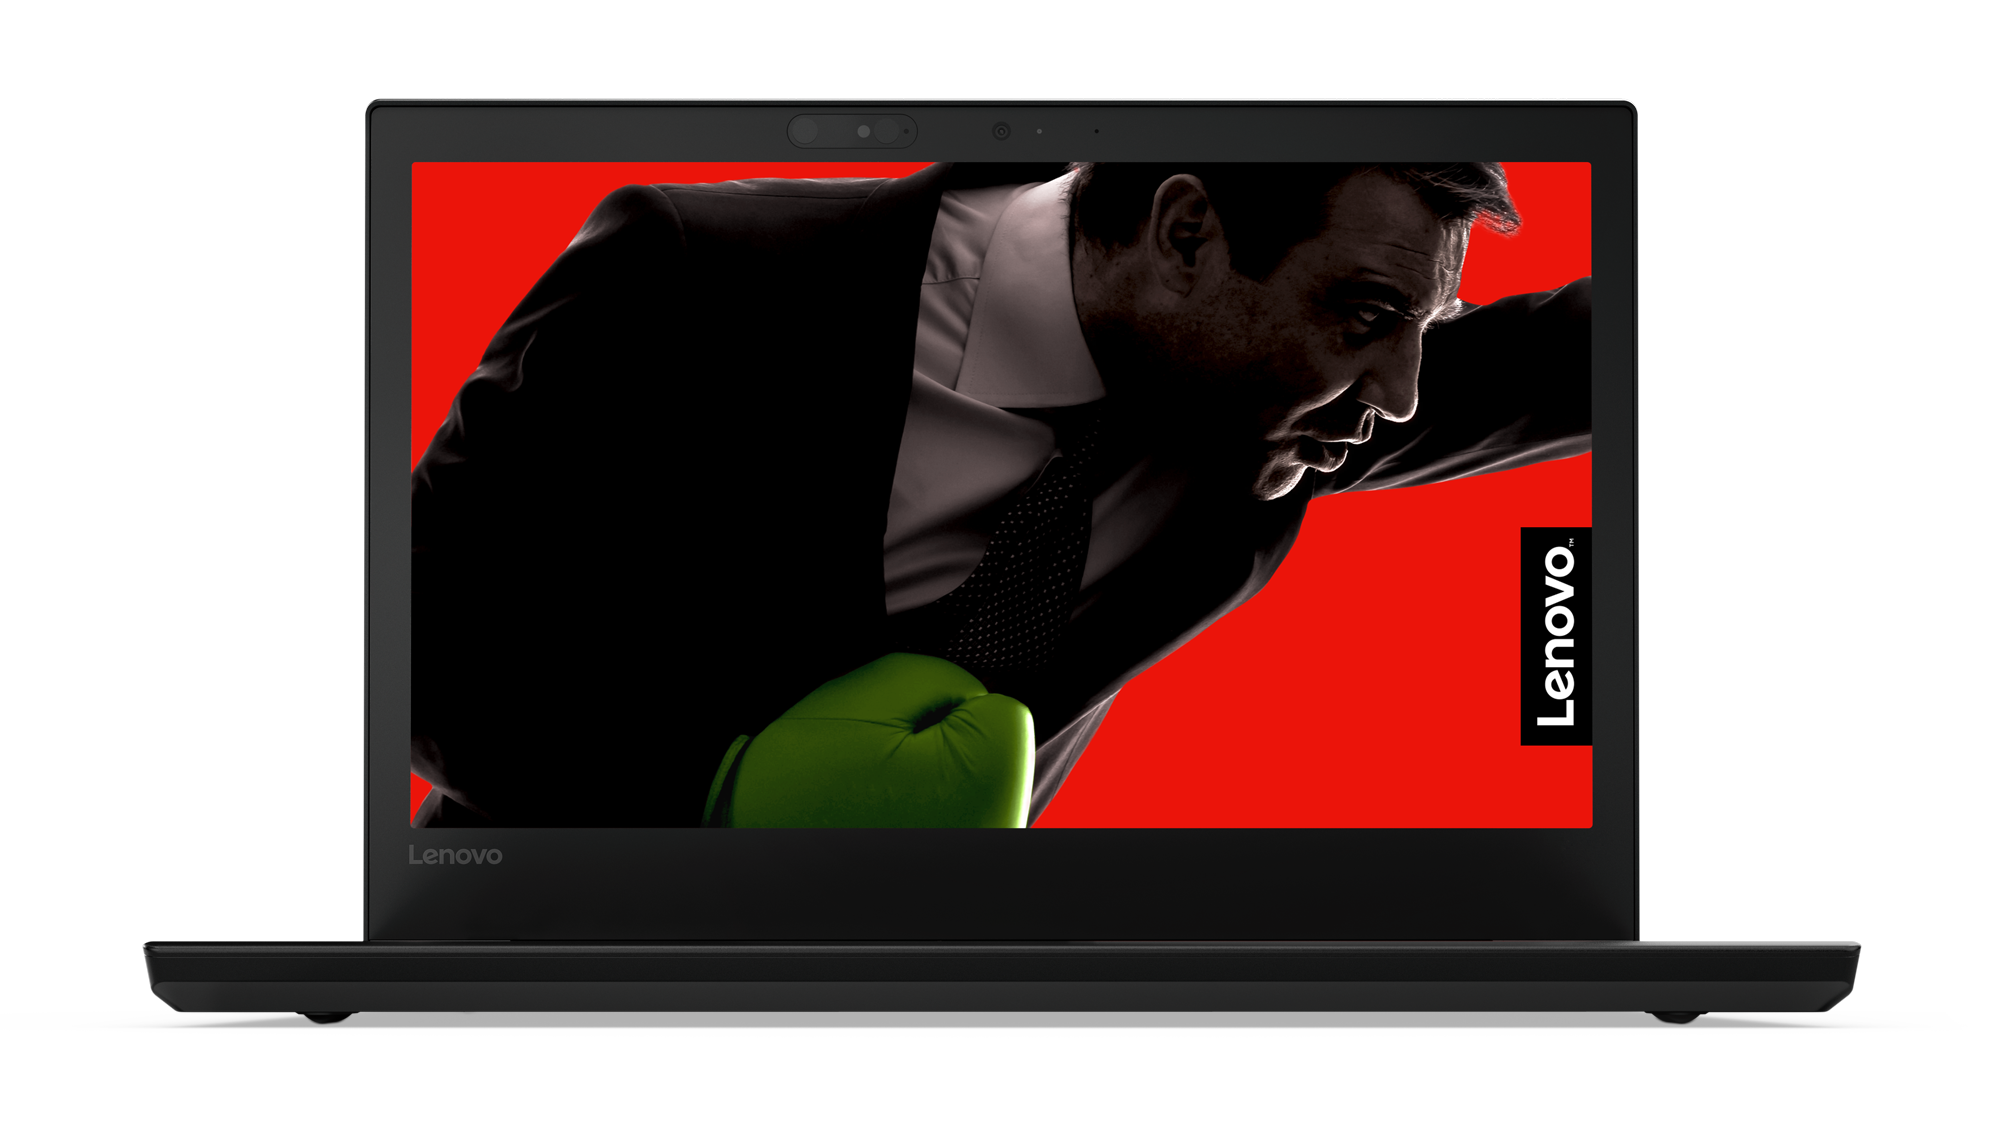 Lenovo announces ThinkPad Anniversary Edition 25 laptop to honour Retro ThinkPad 700C